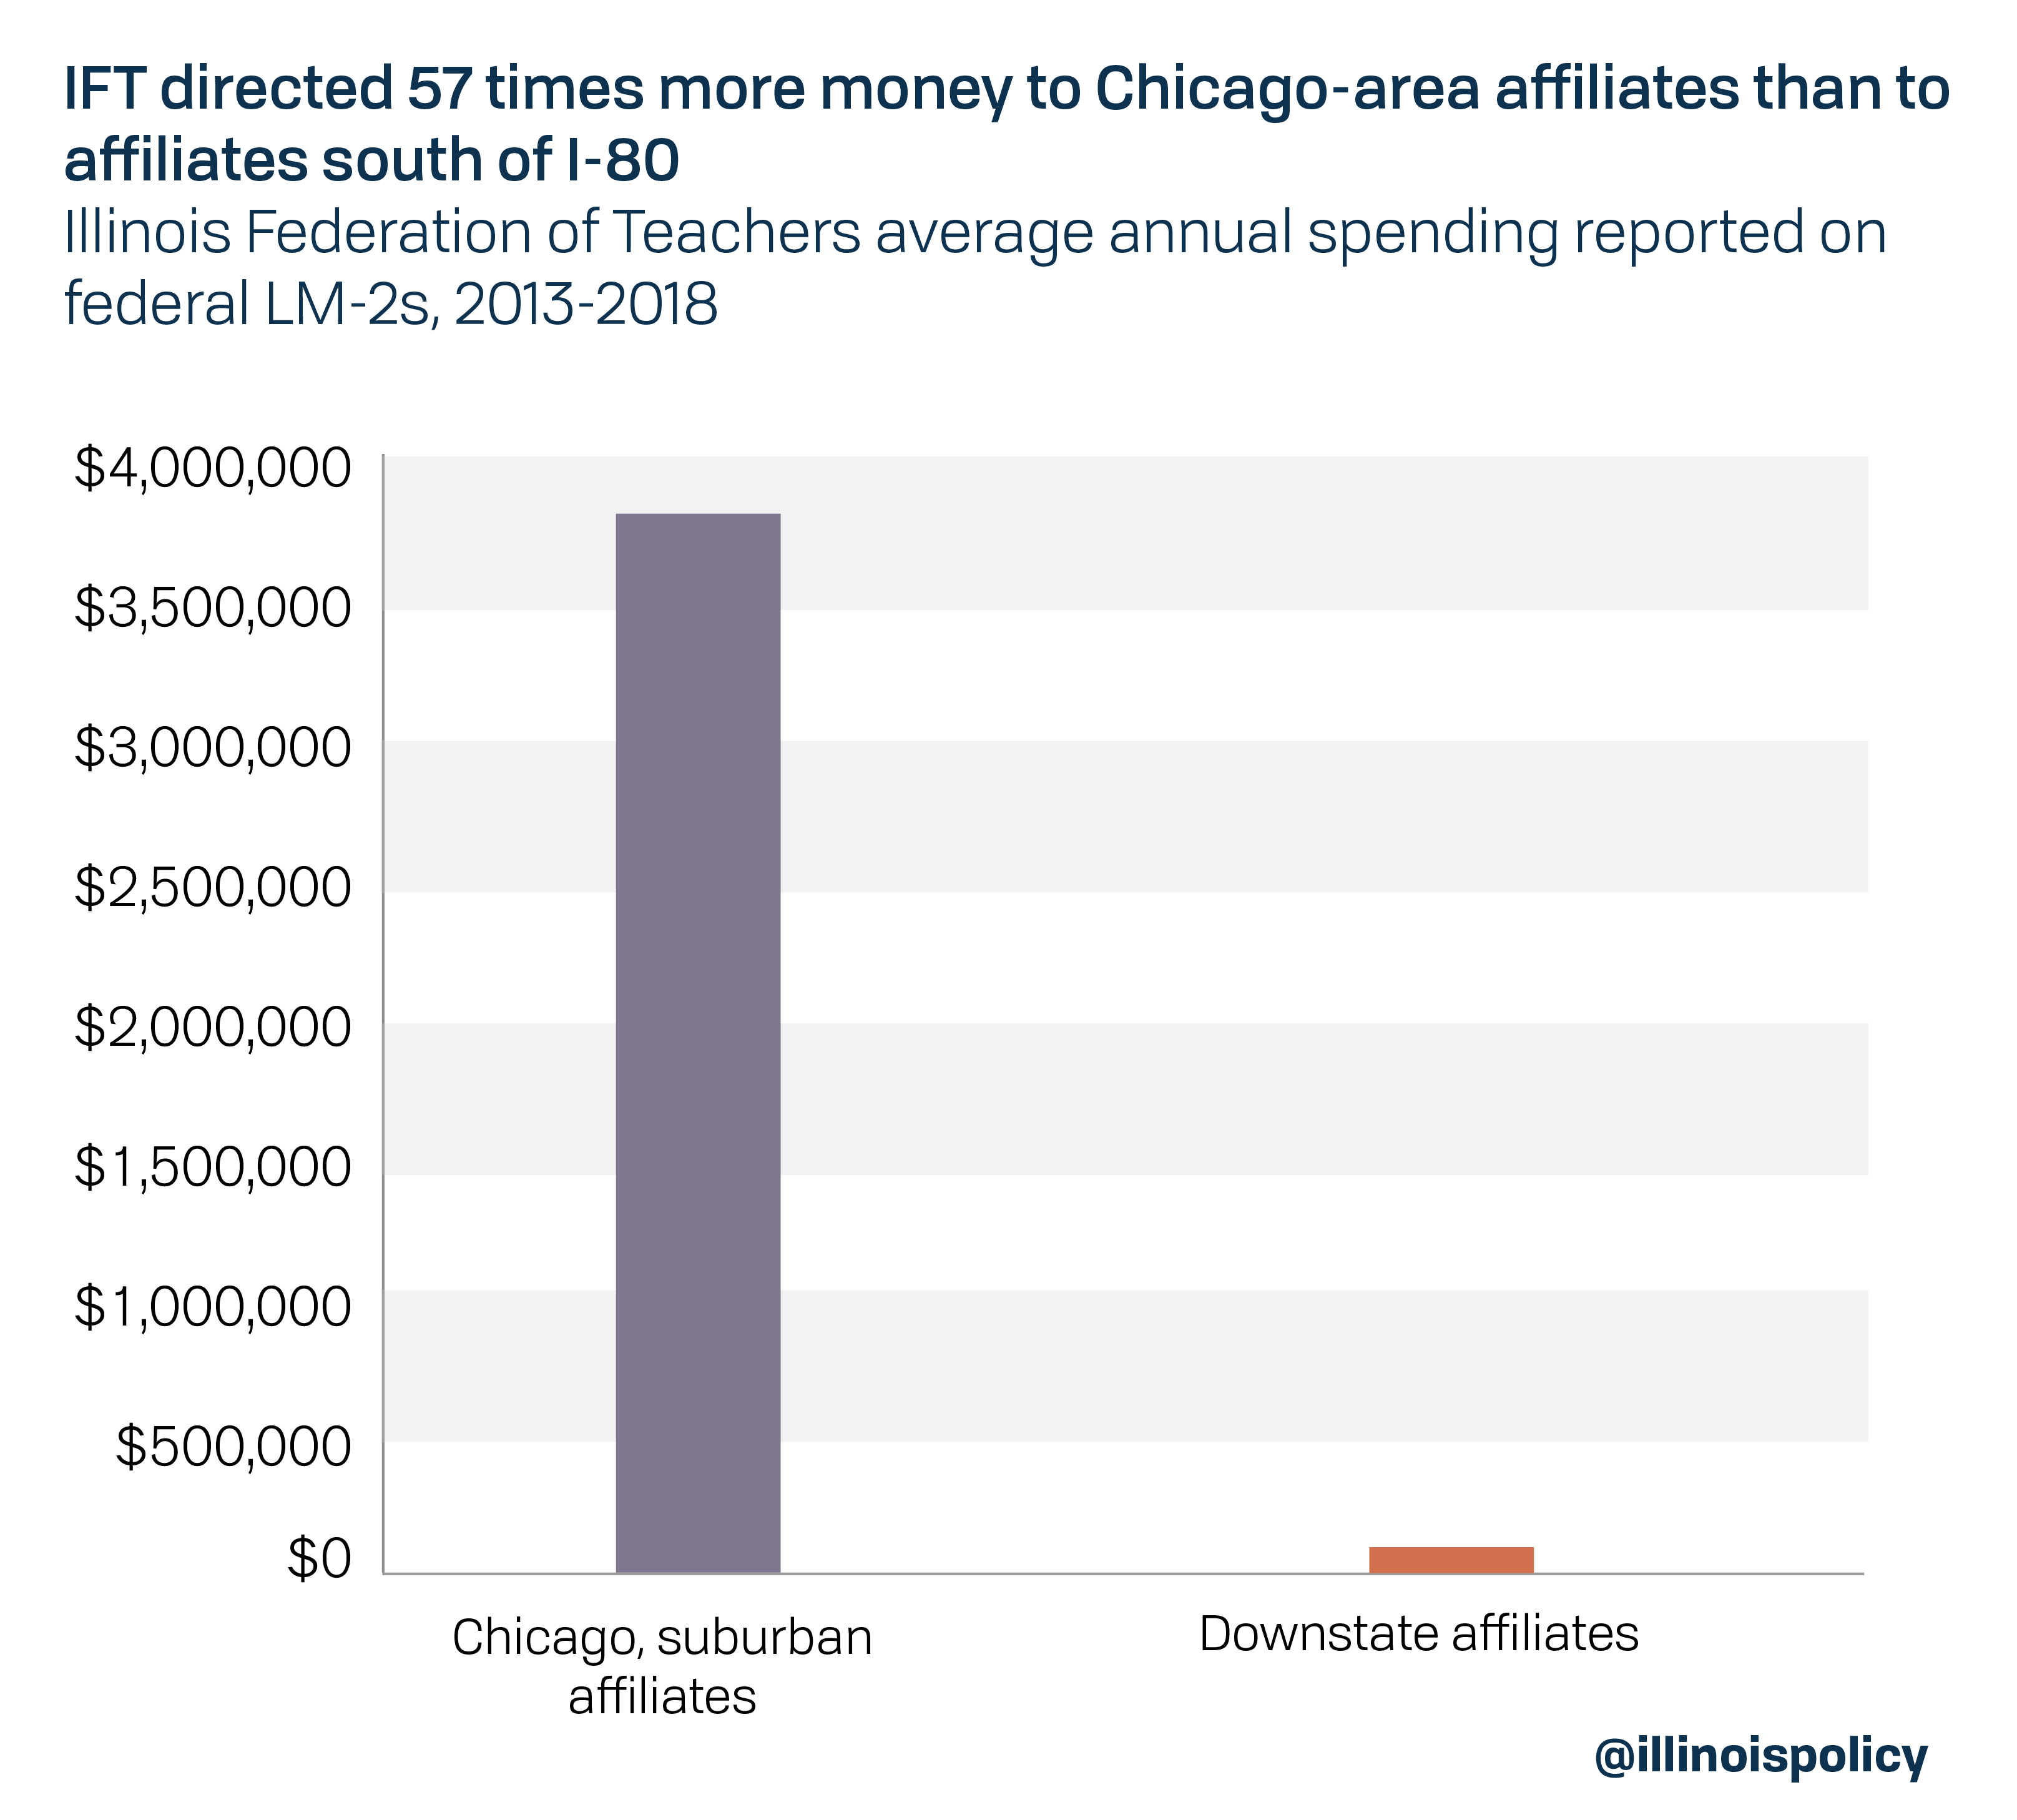 IFT directed 57 times more money to Chicago-area affiliates than to affiliates south of I-80